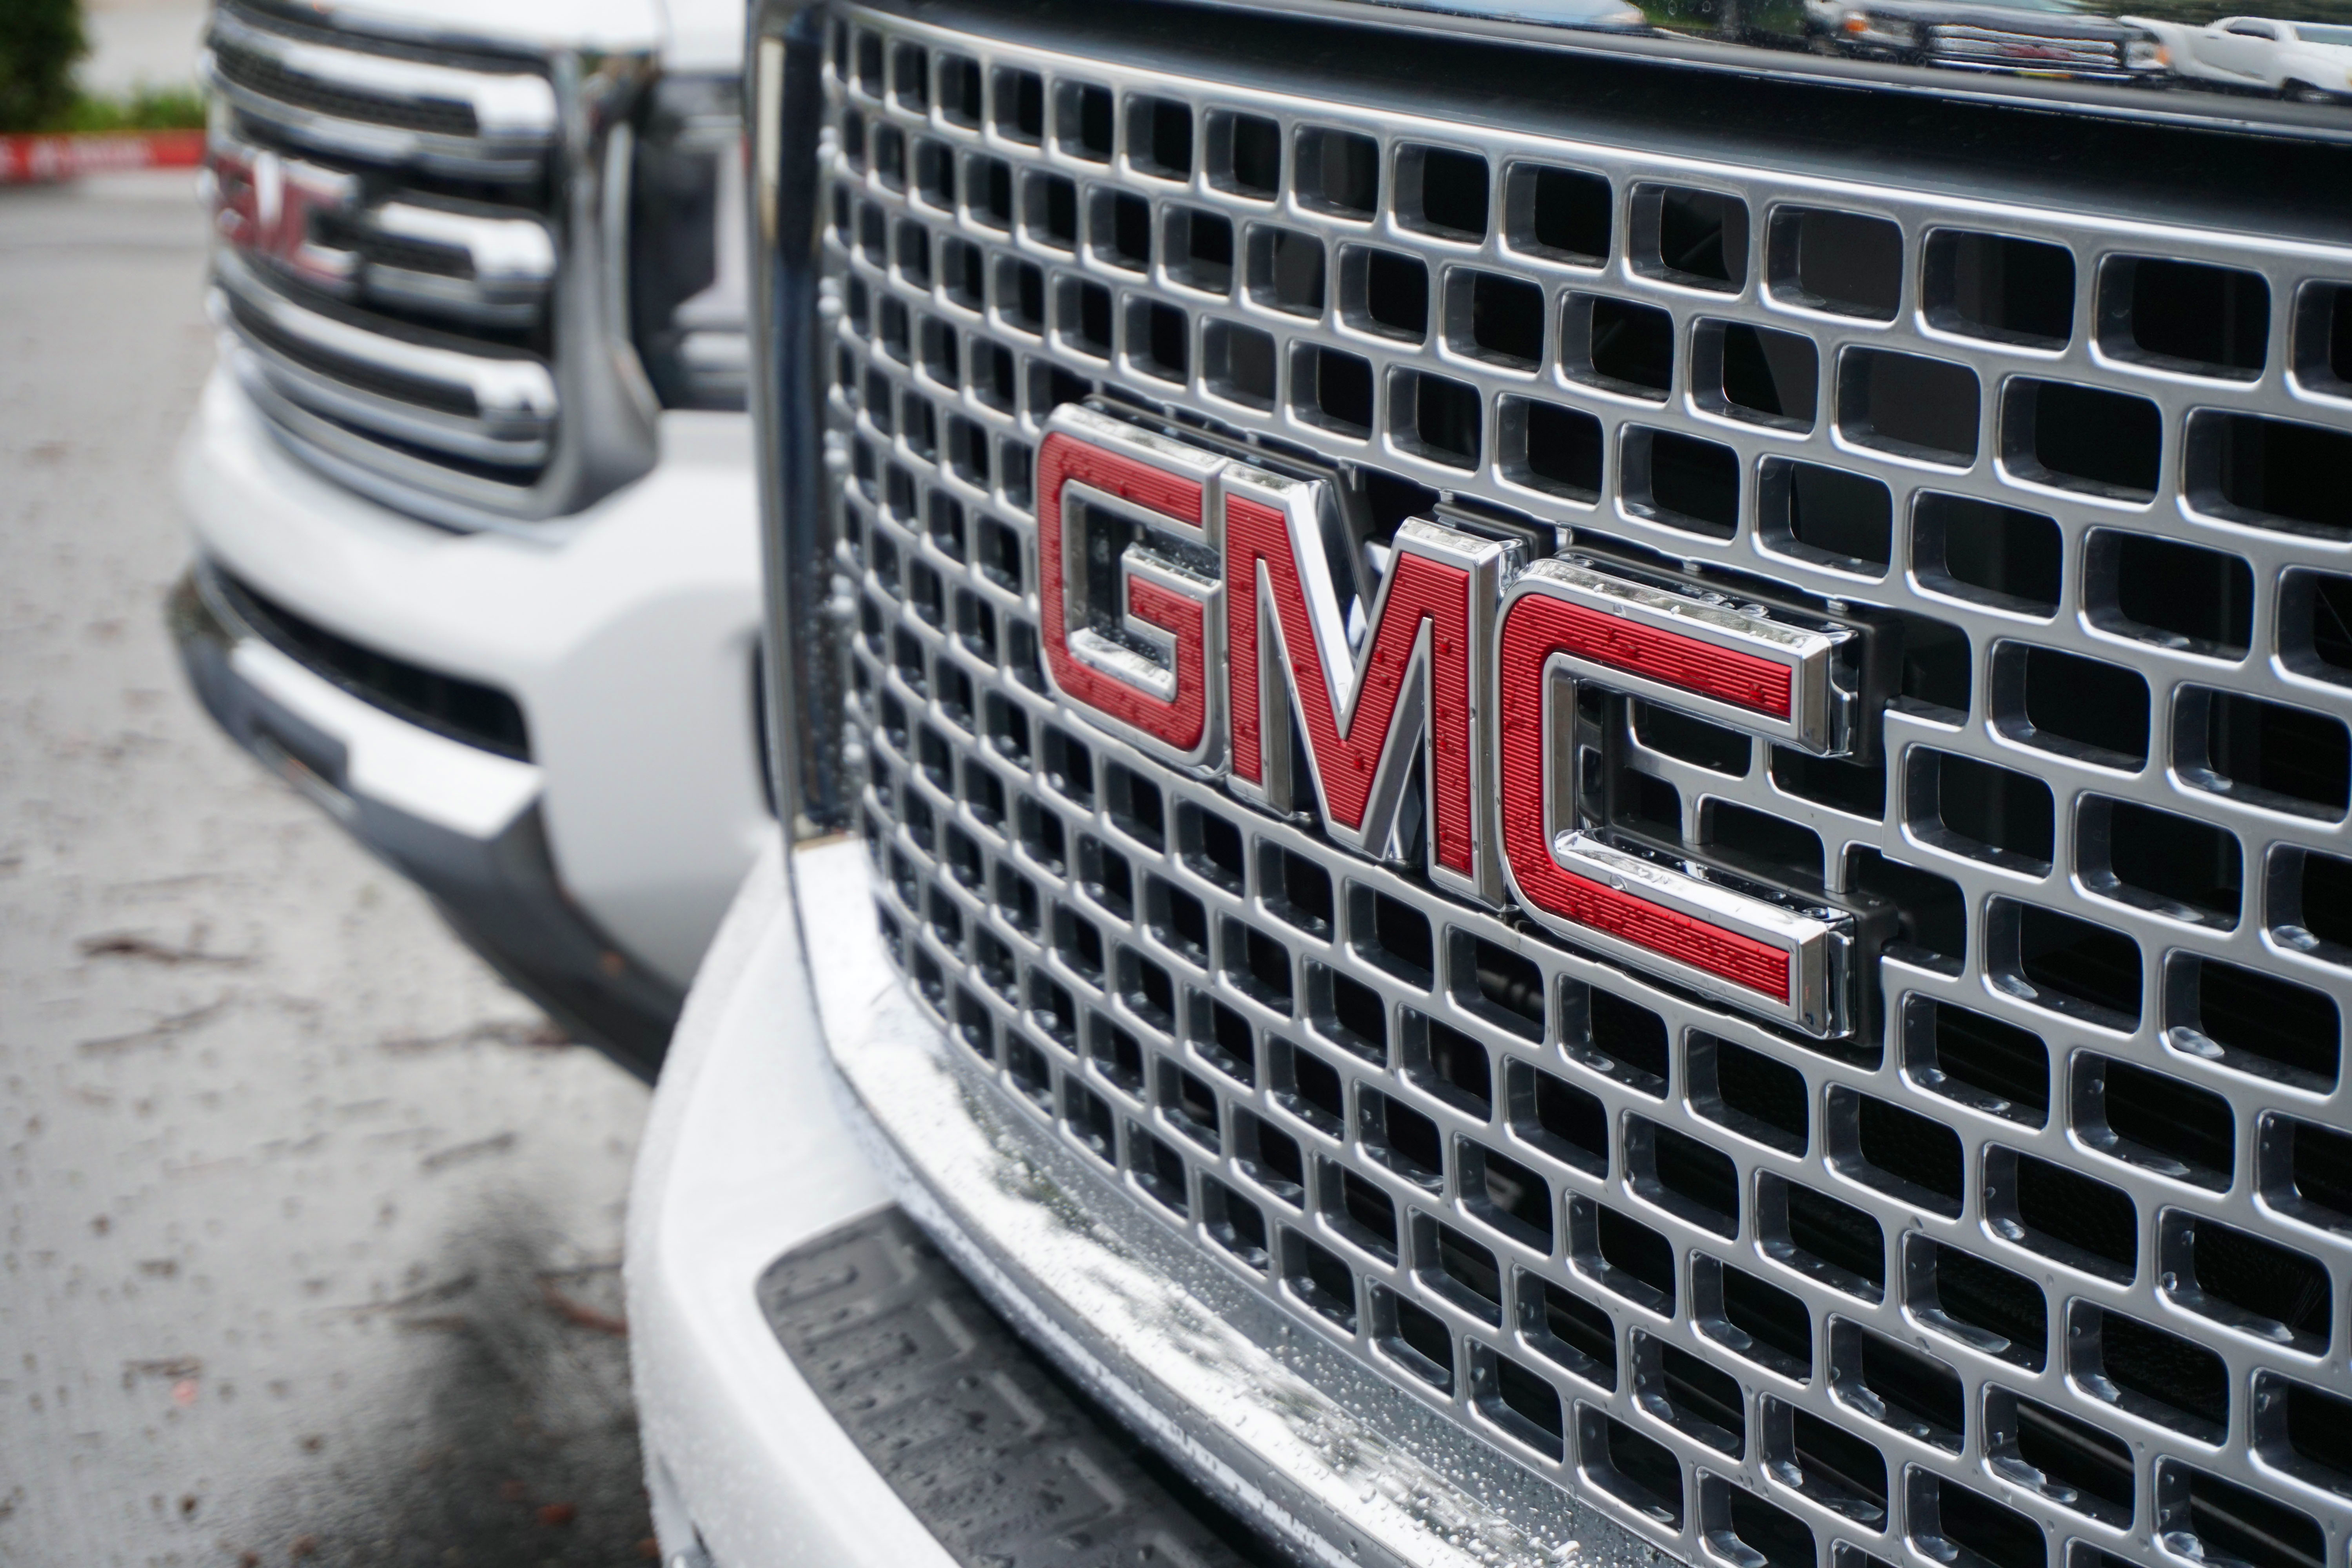 New Diesels for Toyota, Nissan, Chevy, GMC set to Flood the Market